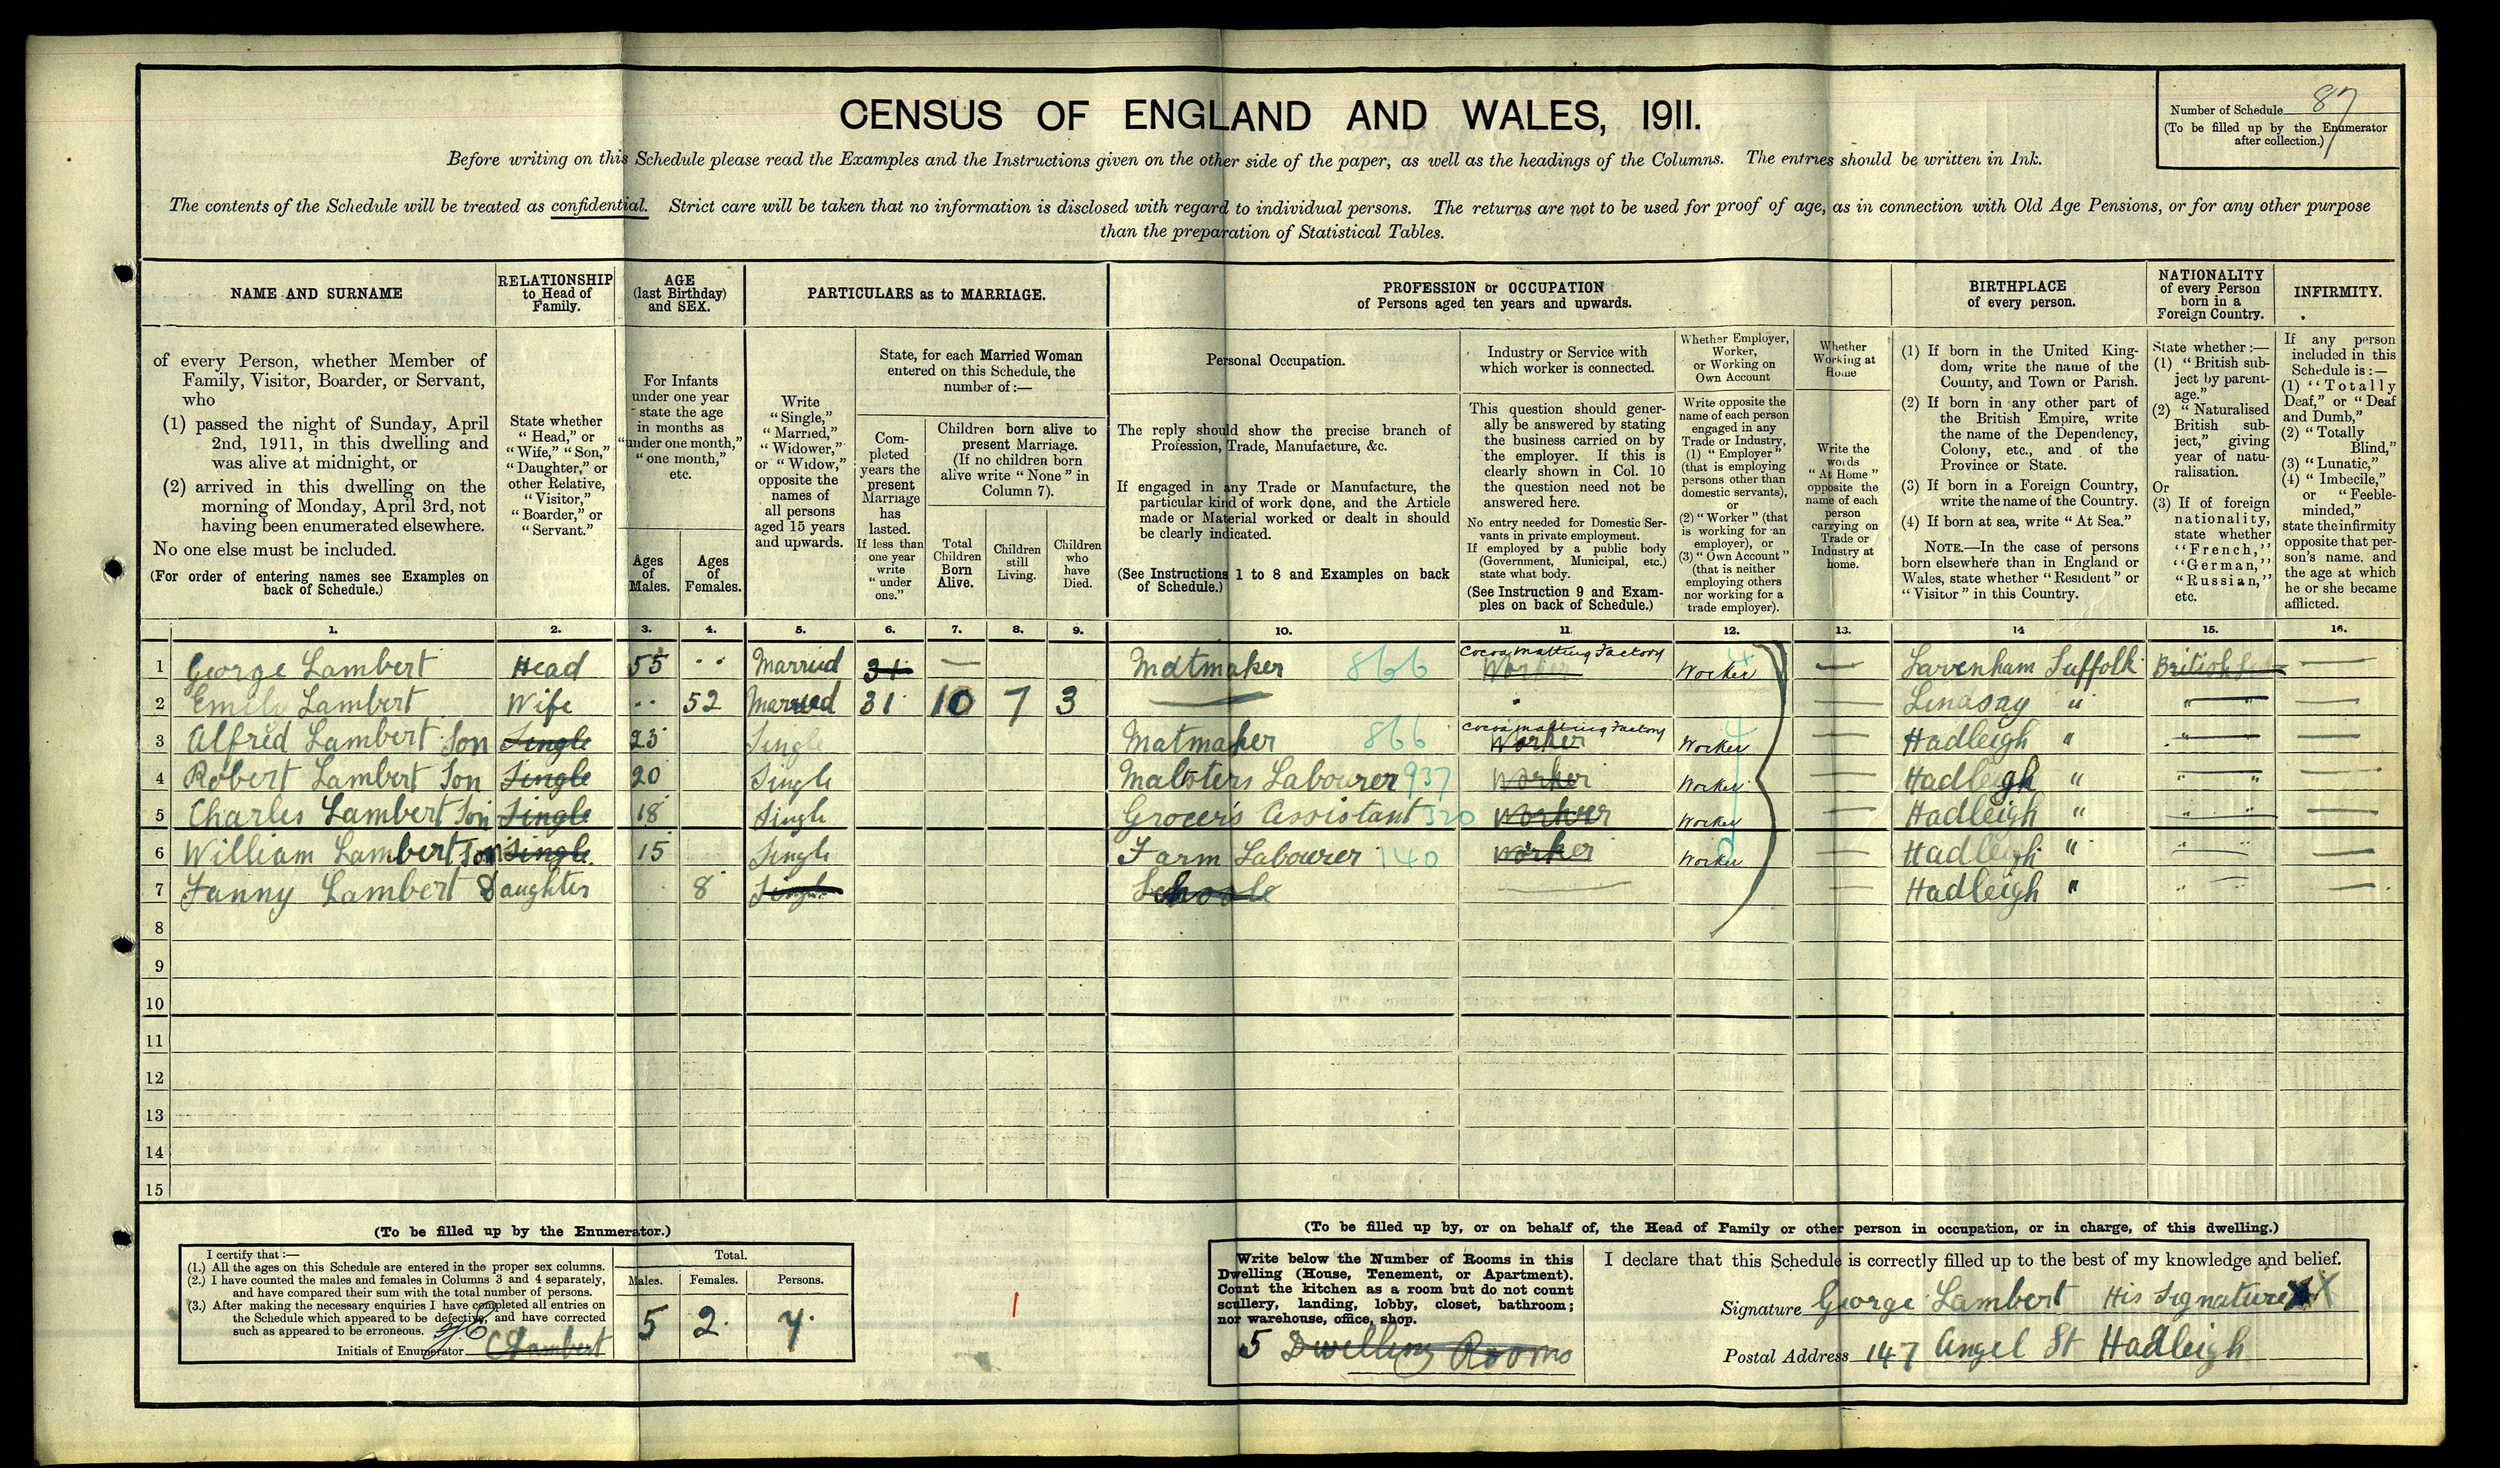 Robert and Alfred Lambert 1911 Census.jpg